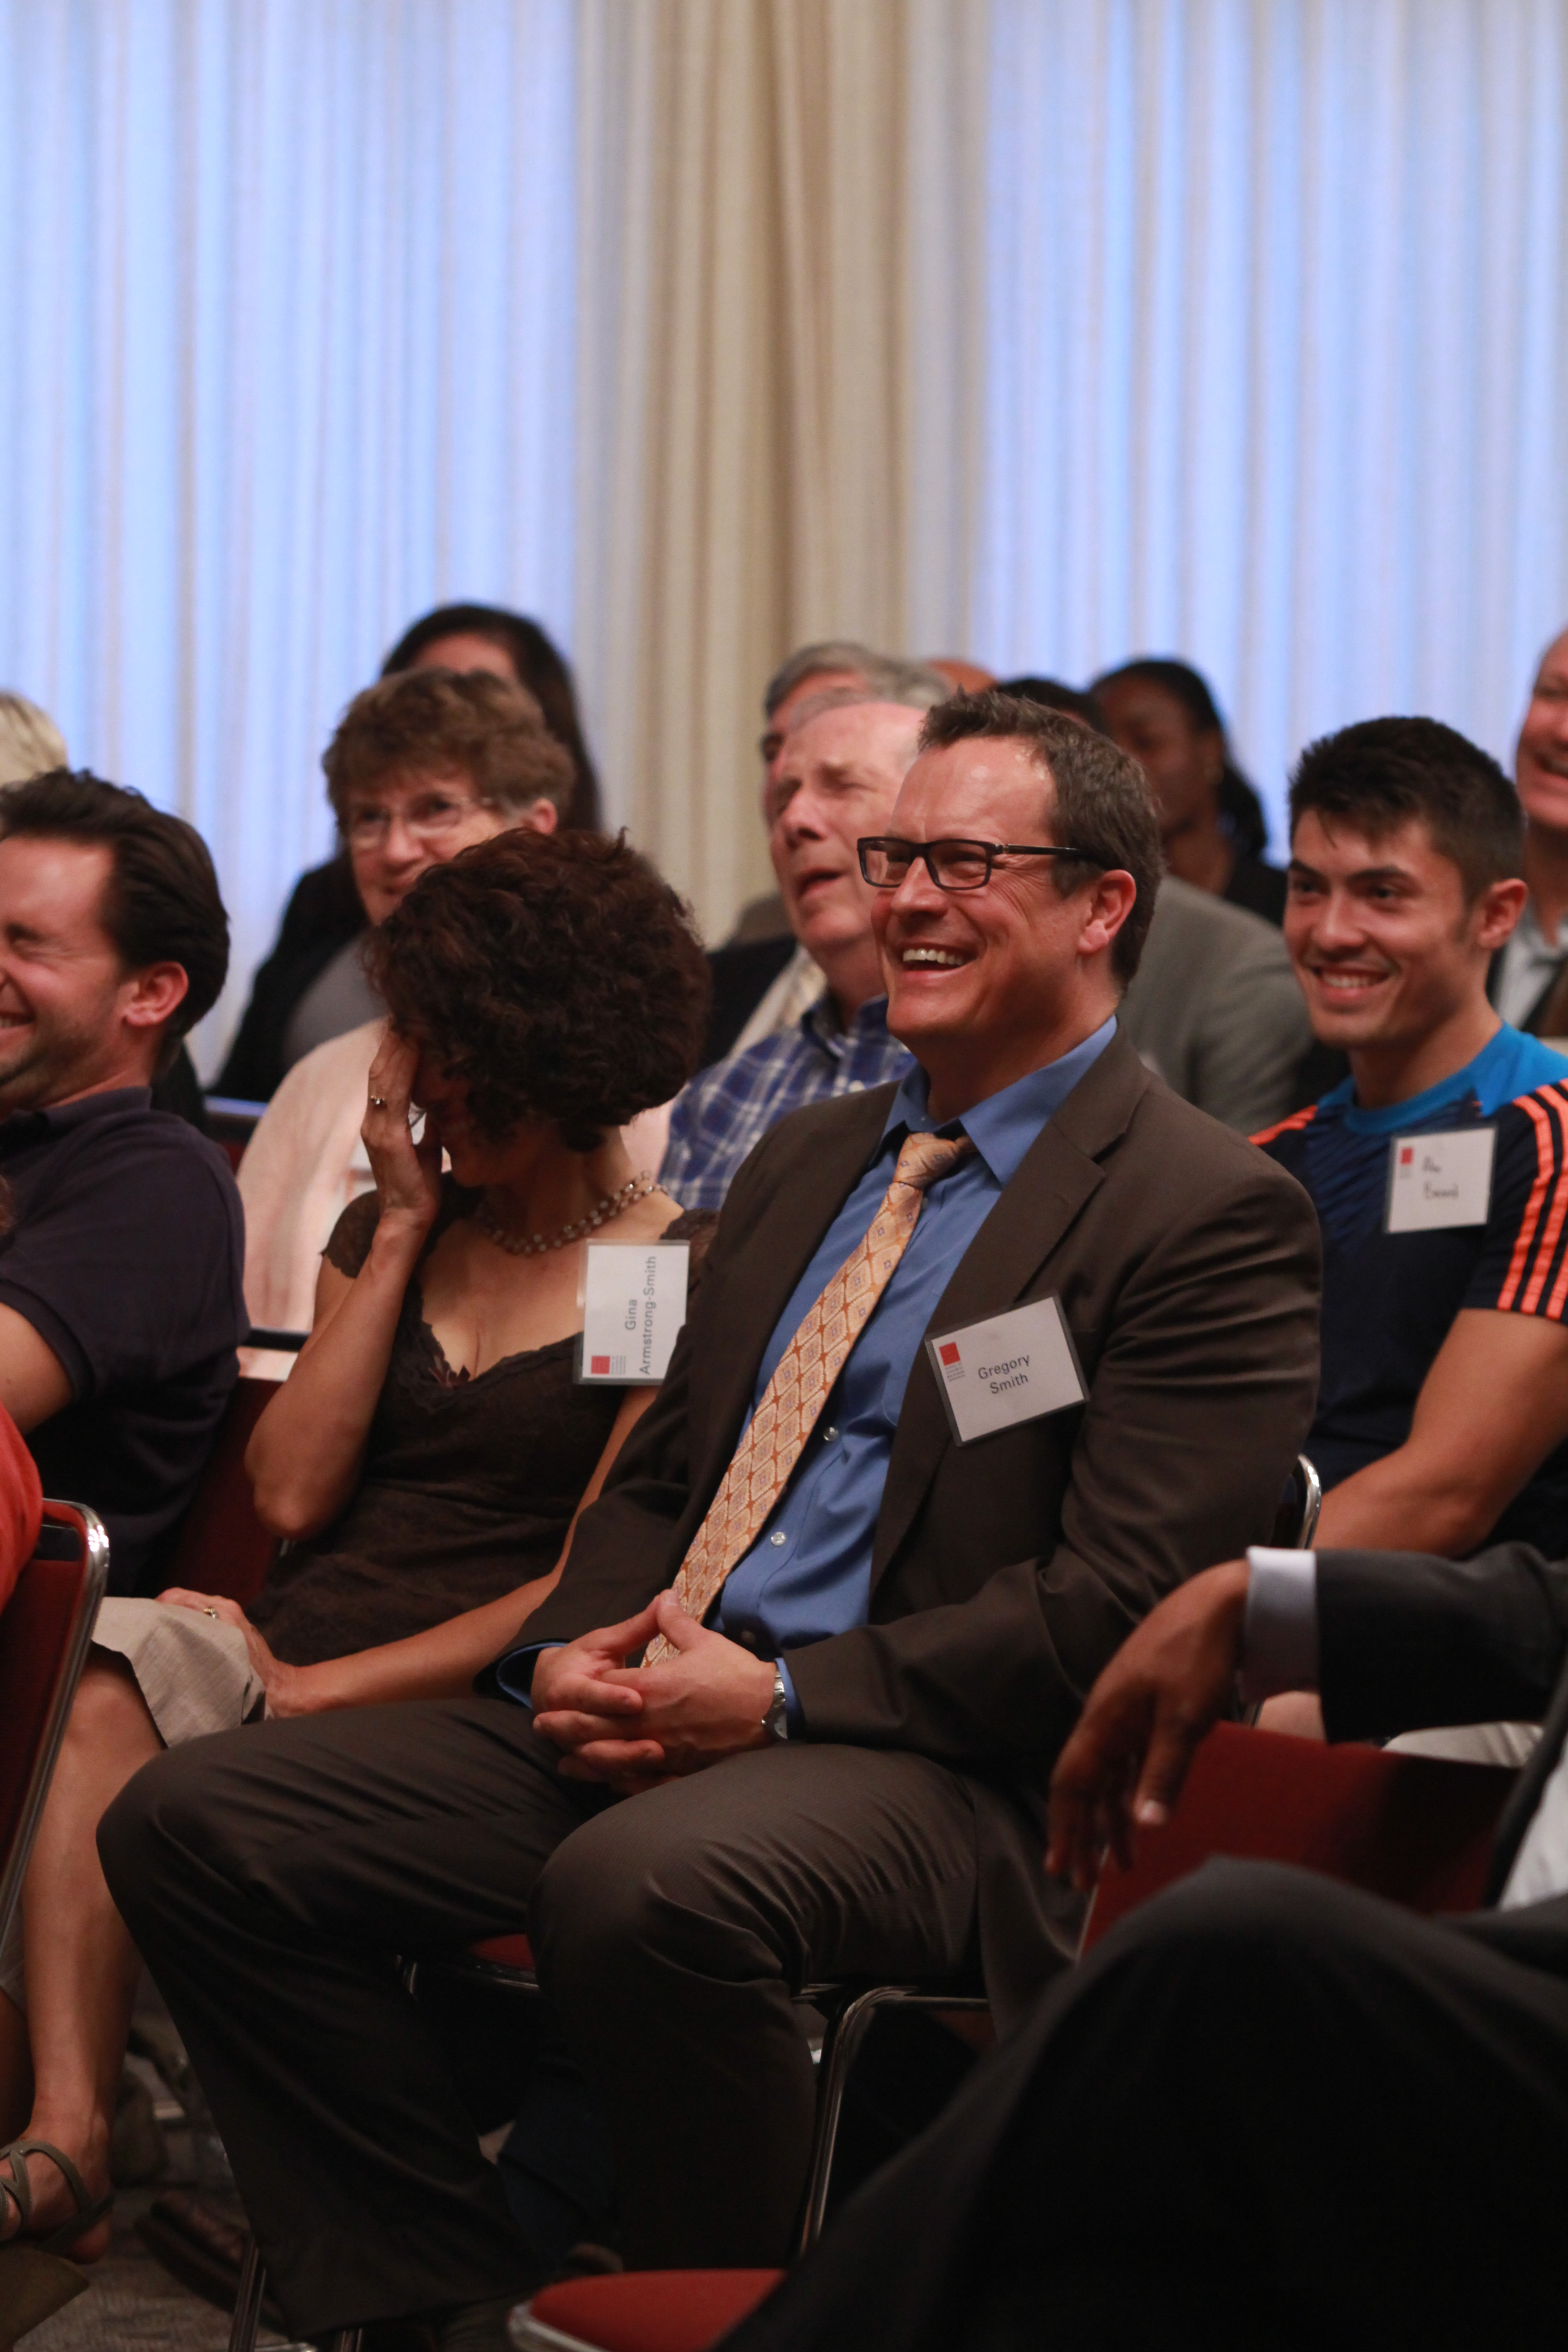 Audience at Executive Speaker Series September 19, 2013